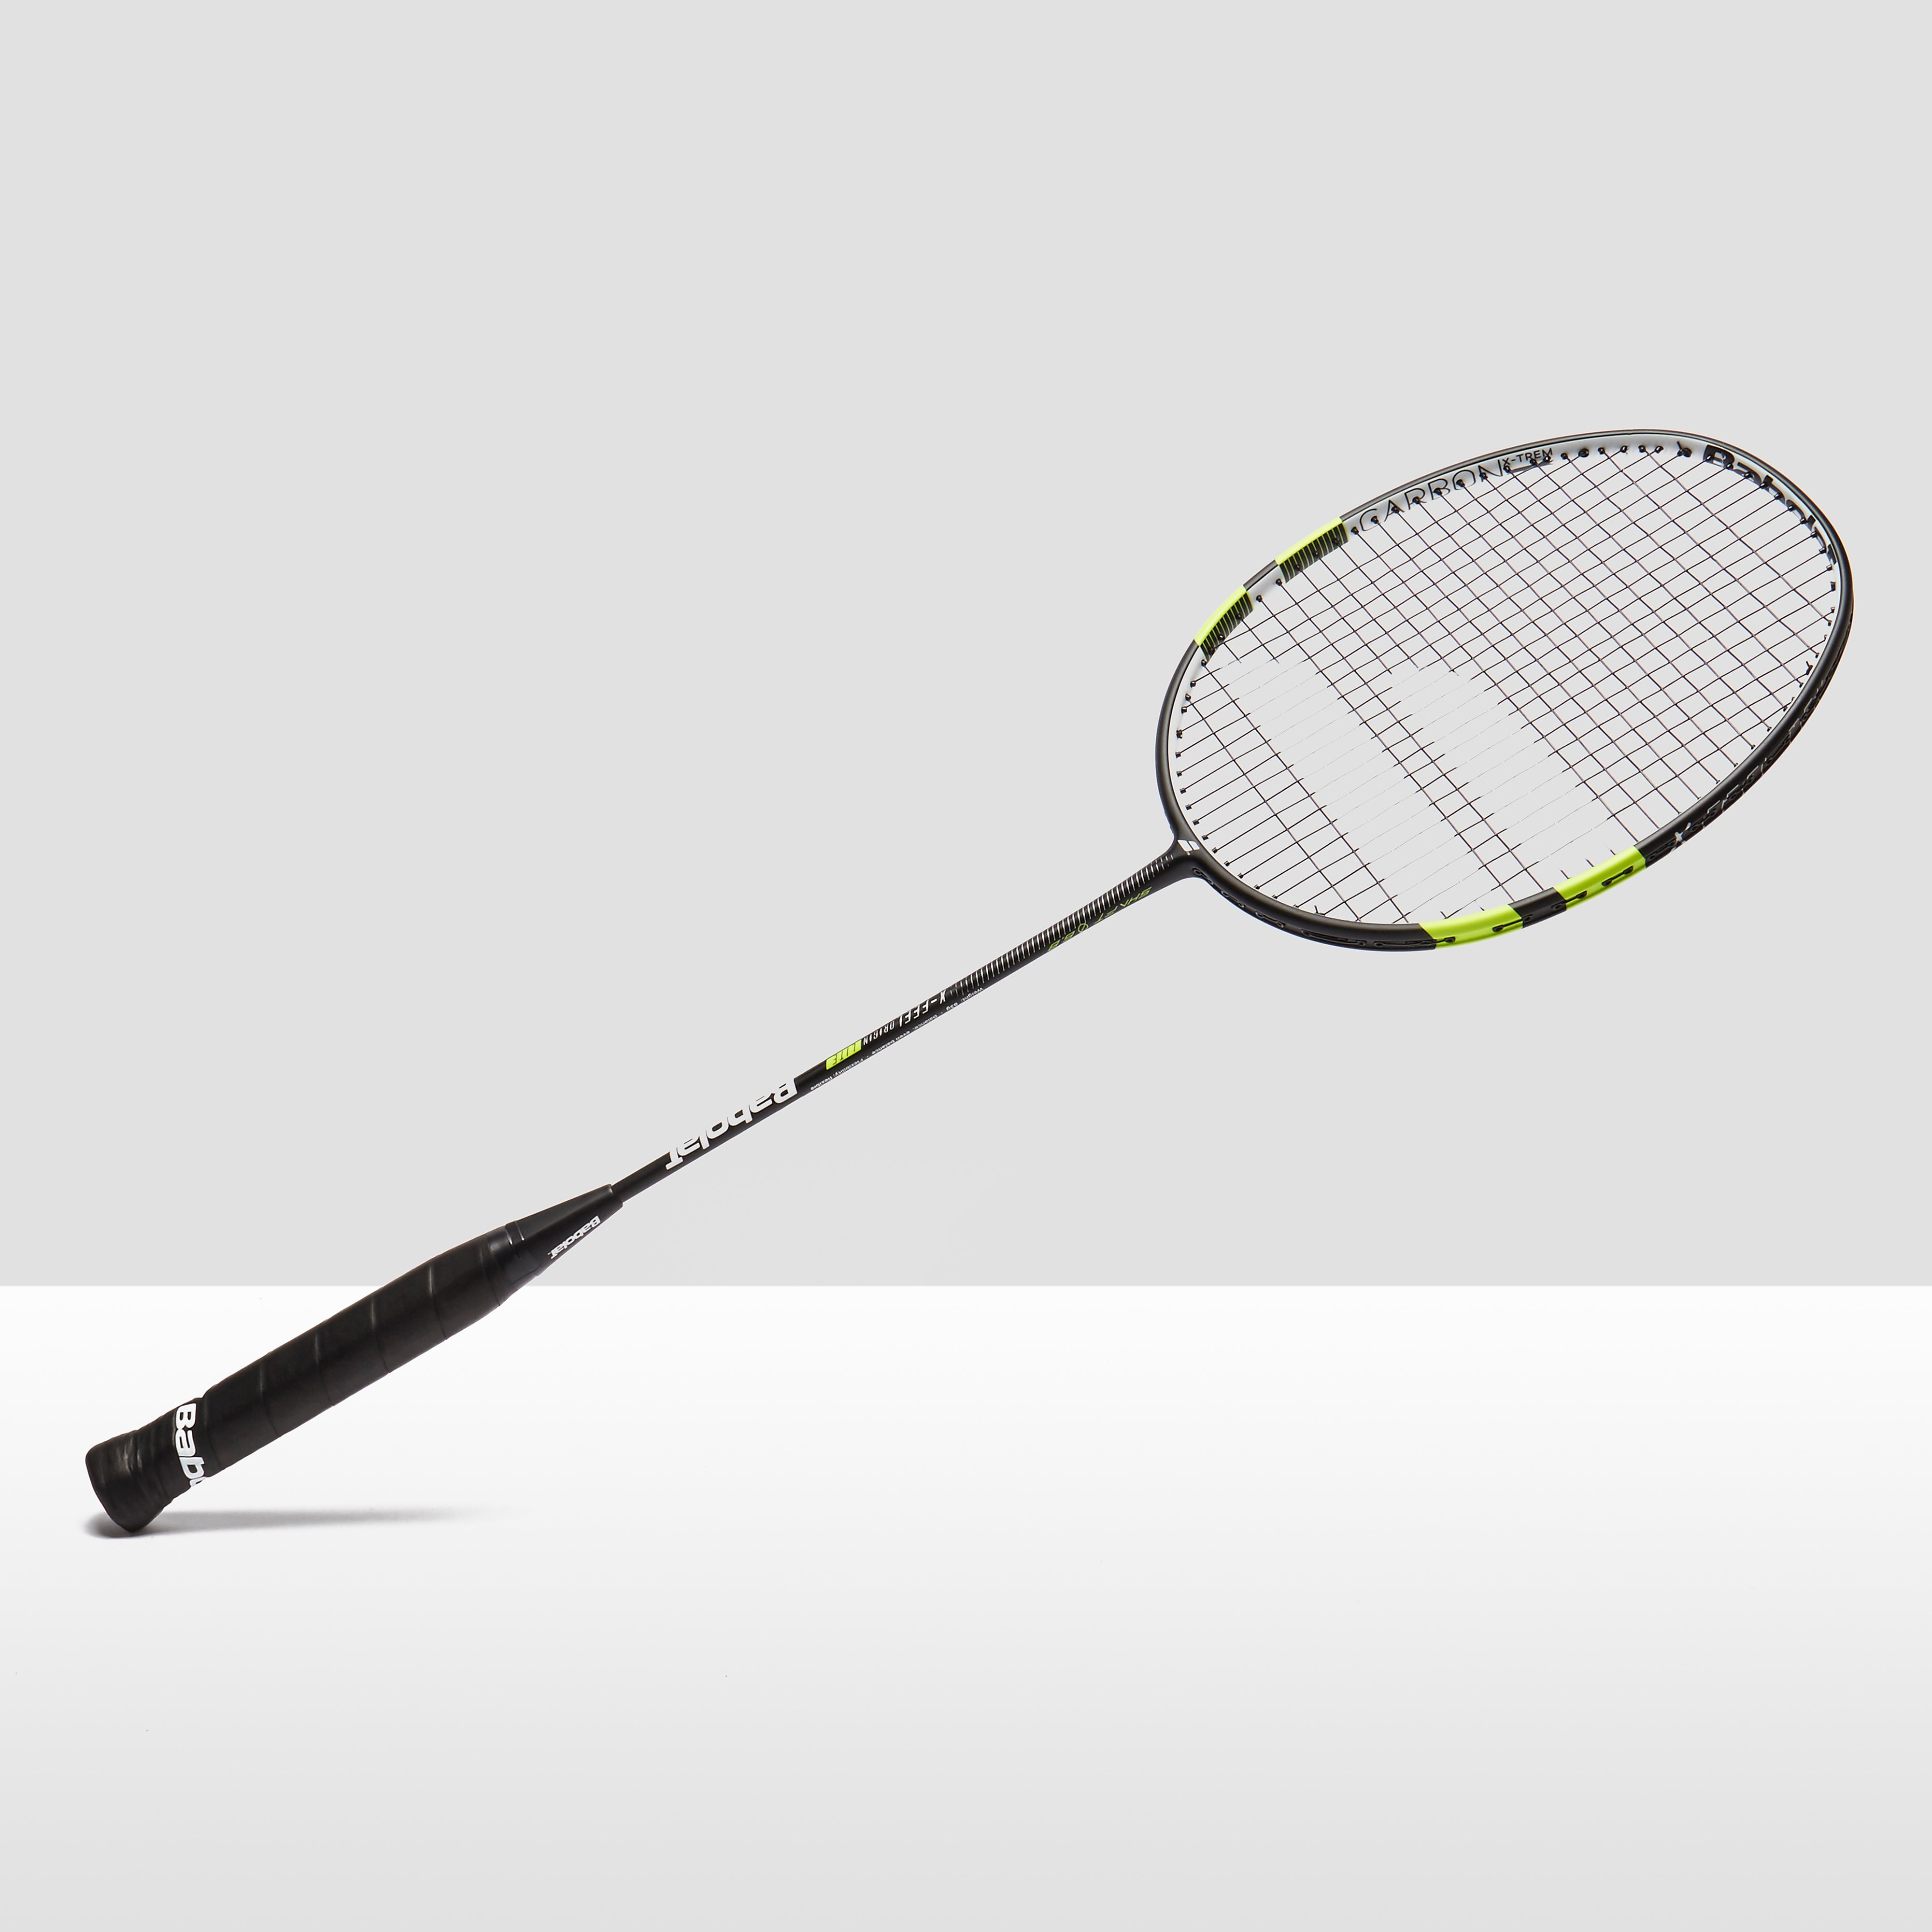 Babolat X-Feel Origin Lite Badminton Racket